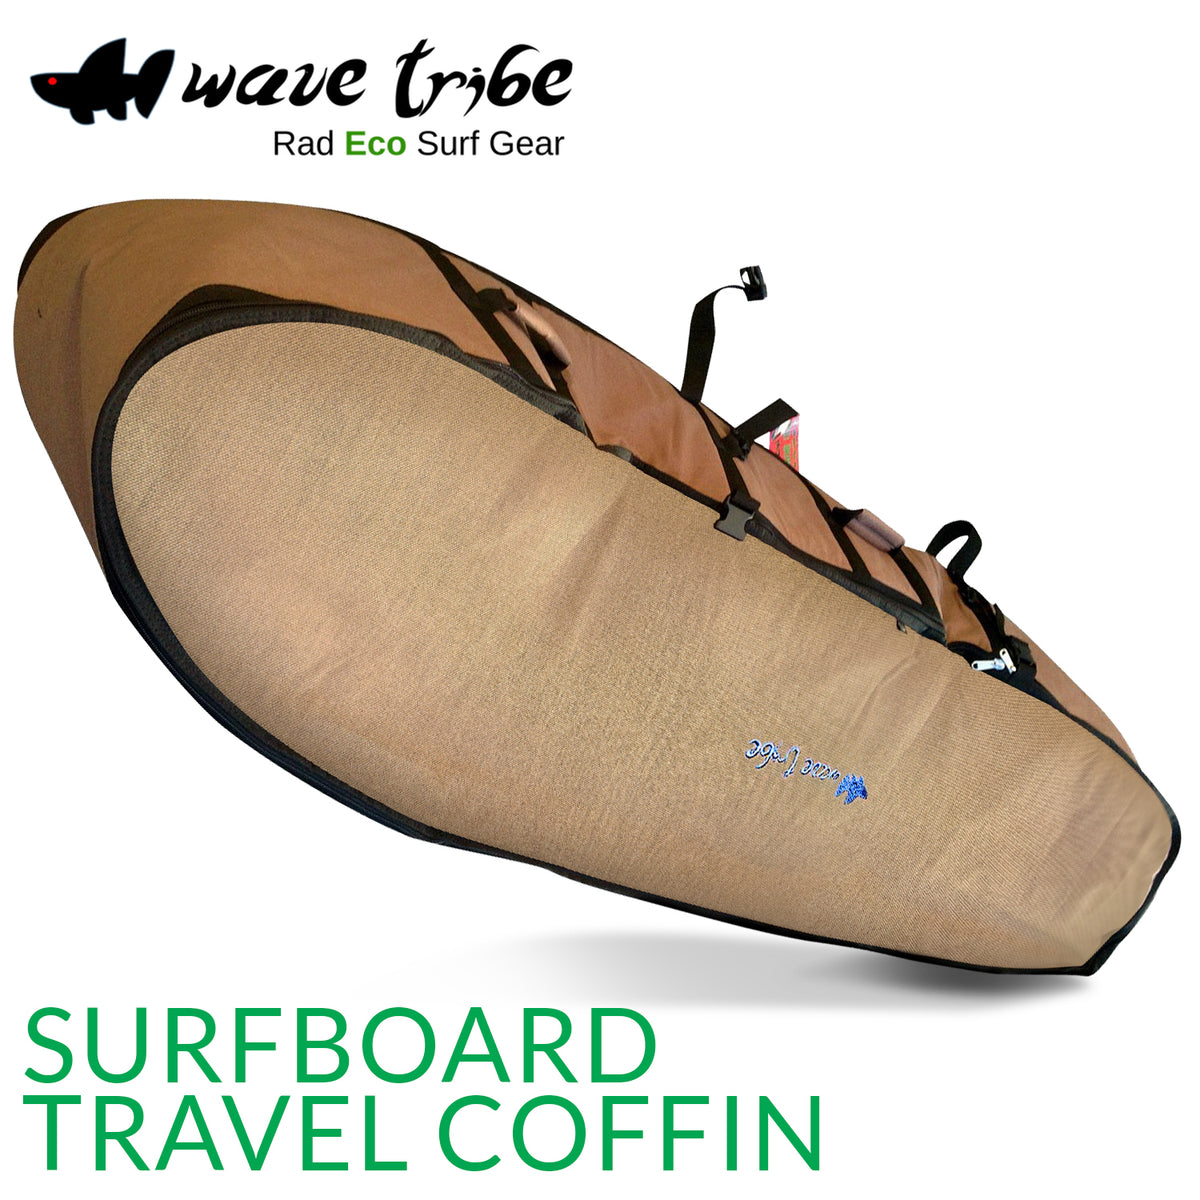 Hemp Travel Coffin 9'6